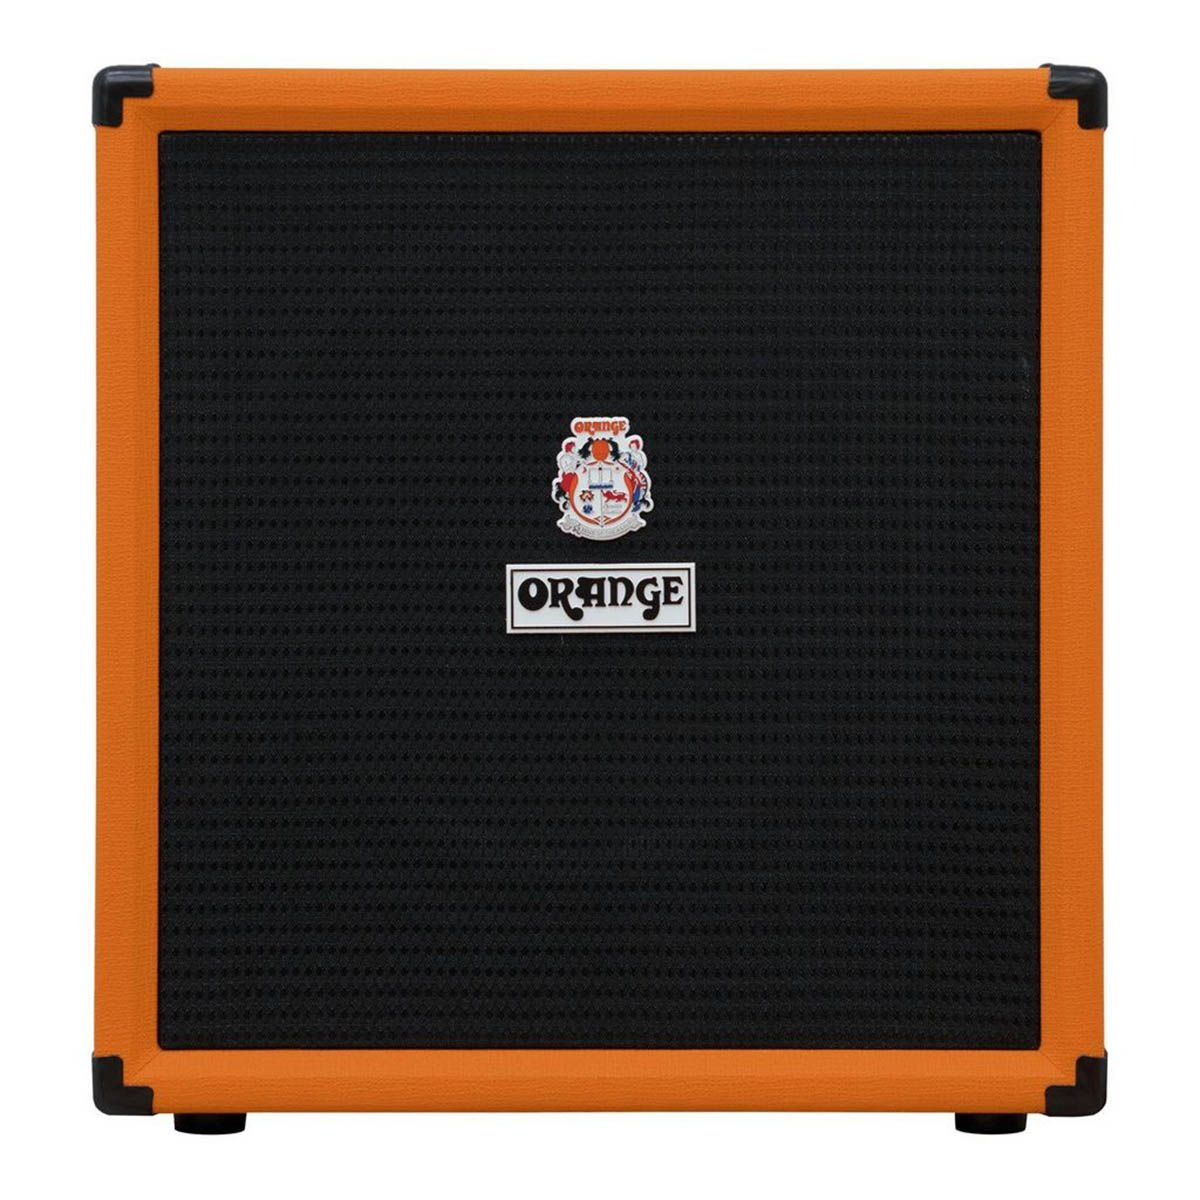 Caixa Amplificada Orange Crush Bass 100W para Contrabaixo